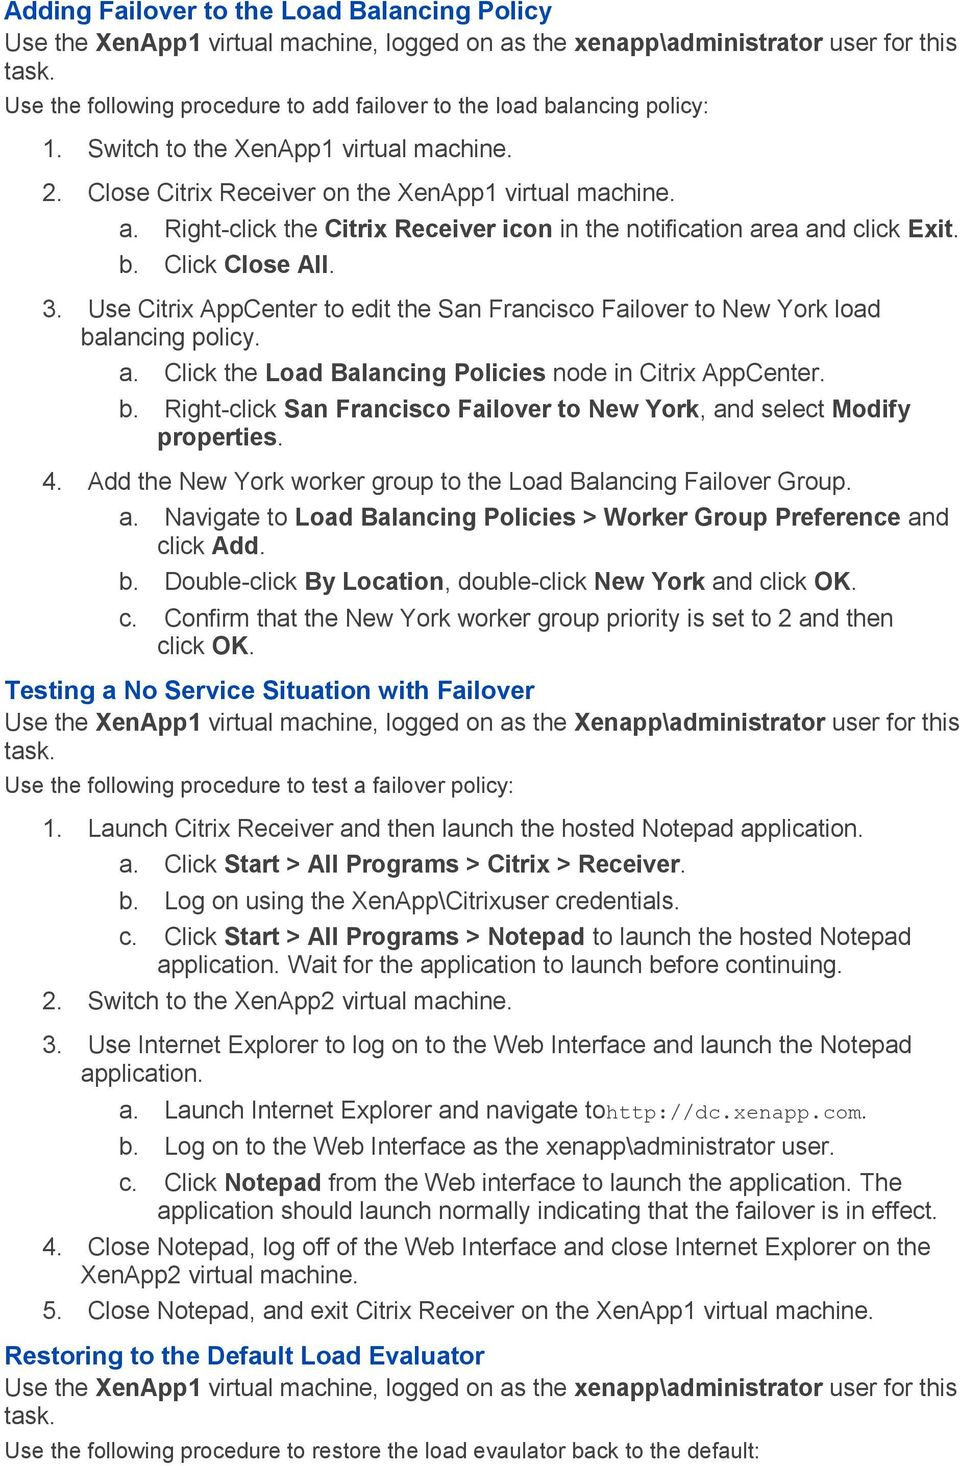 Click Close All. 3. Use Citrix AppCenter to edit the San Francisco Failover to New York load balancing policy. a. Click the Load Balancing Policies node in Citrix AppCenter. b. Right-click San Francisco Failover to New York, and select Modify properties.